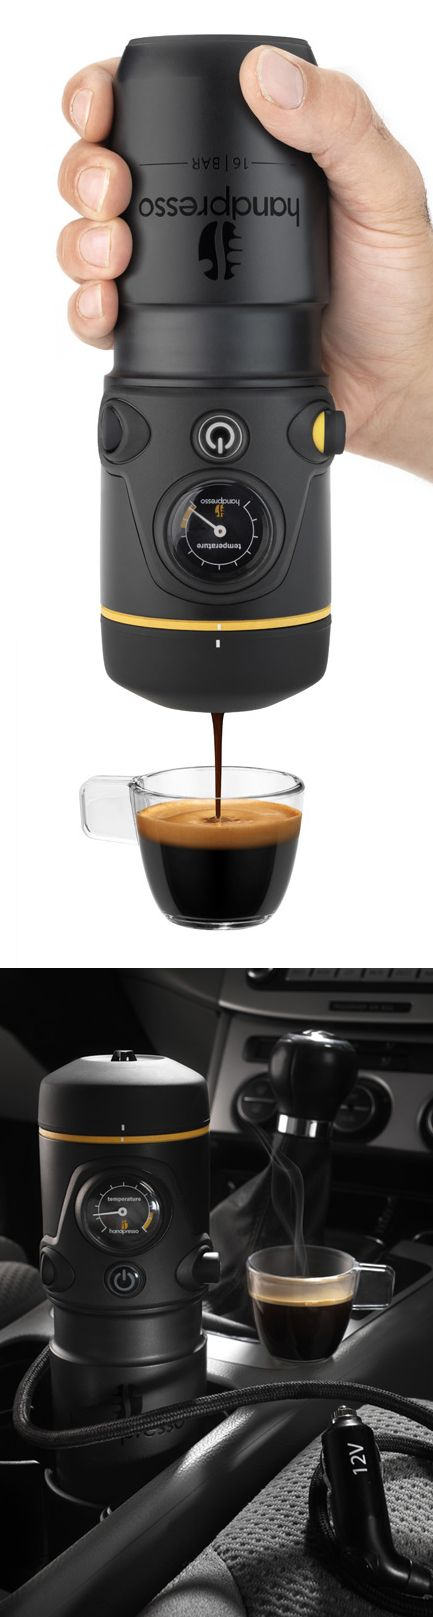 Portable Coffee Maker // simply plug the Handpresso into your car and have fresh brewed espresso on the go within minutes. Buy at www.espressooutlet.net Similar to the new Minipresso - the Handpresso Auto and the Handpresso Wild are the original portable espresso machines